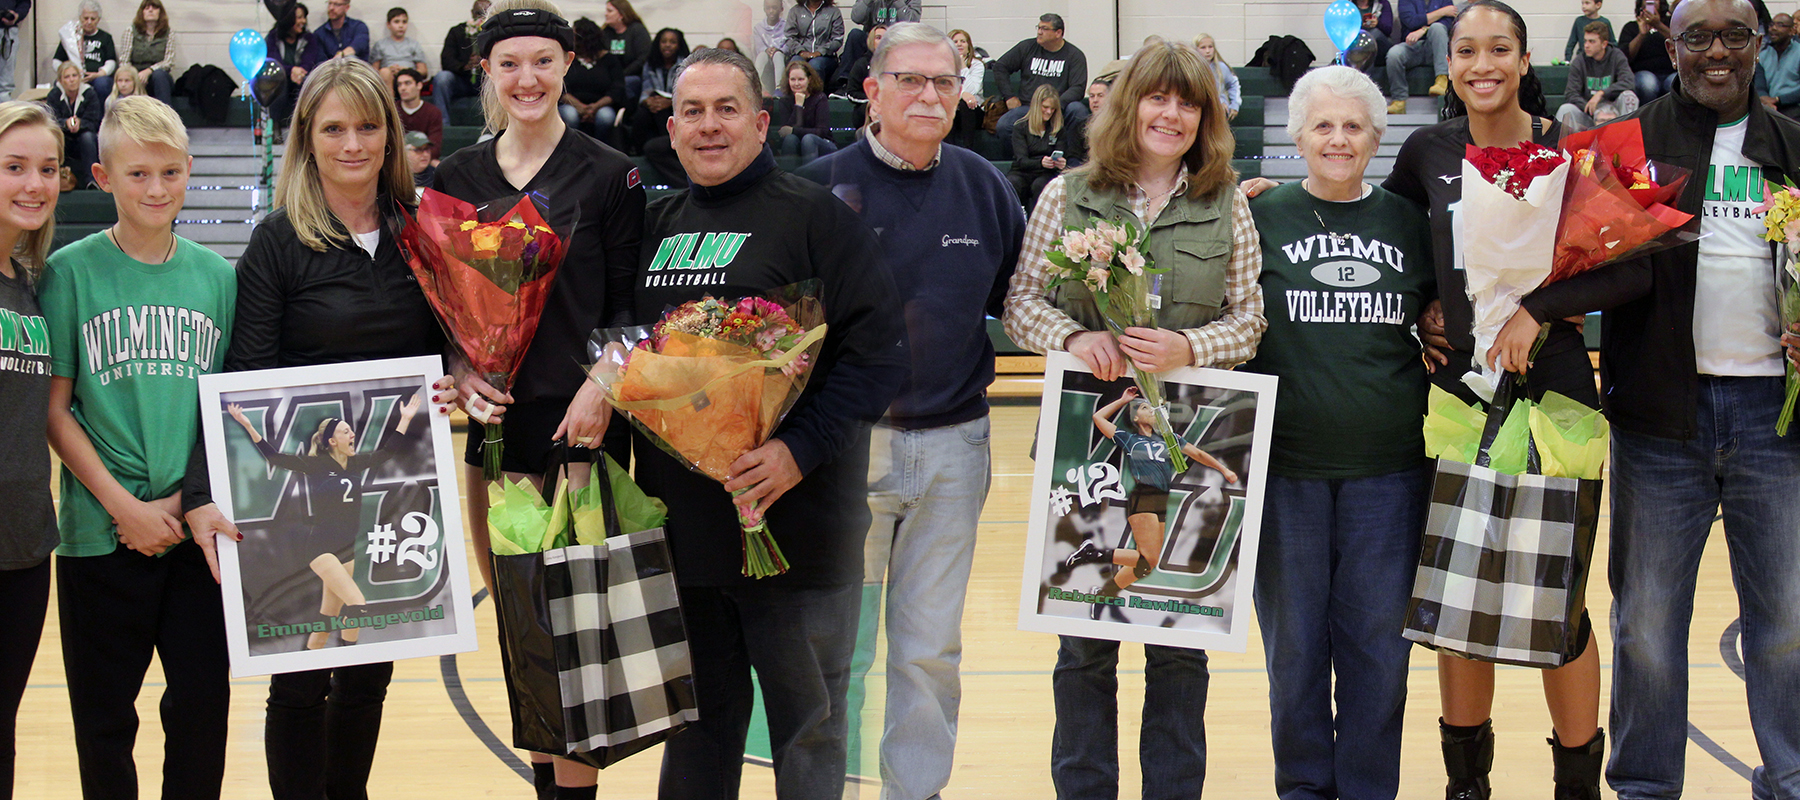 Photo of the two seniors, Emma Kongevold and Rebecca Rawlinson on Senior Day. Copyright 2019; Wilmington University. All rights reserved. Photo by Dan Lauletta. November 2, 2019 vs. Felician